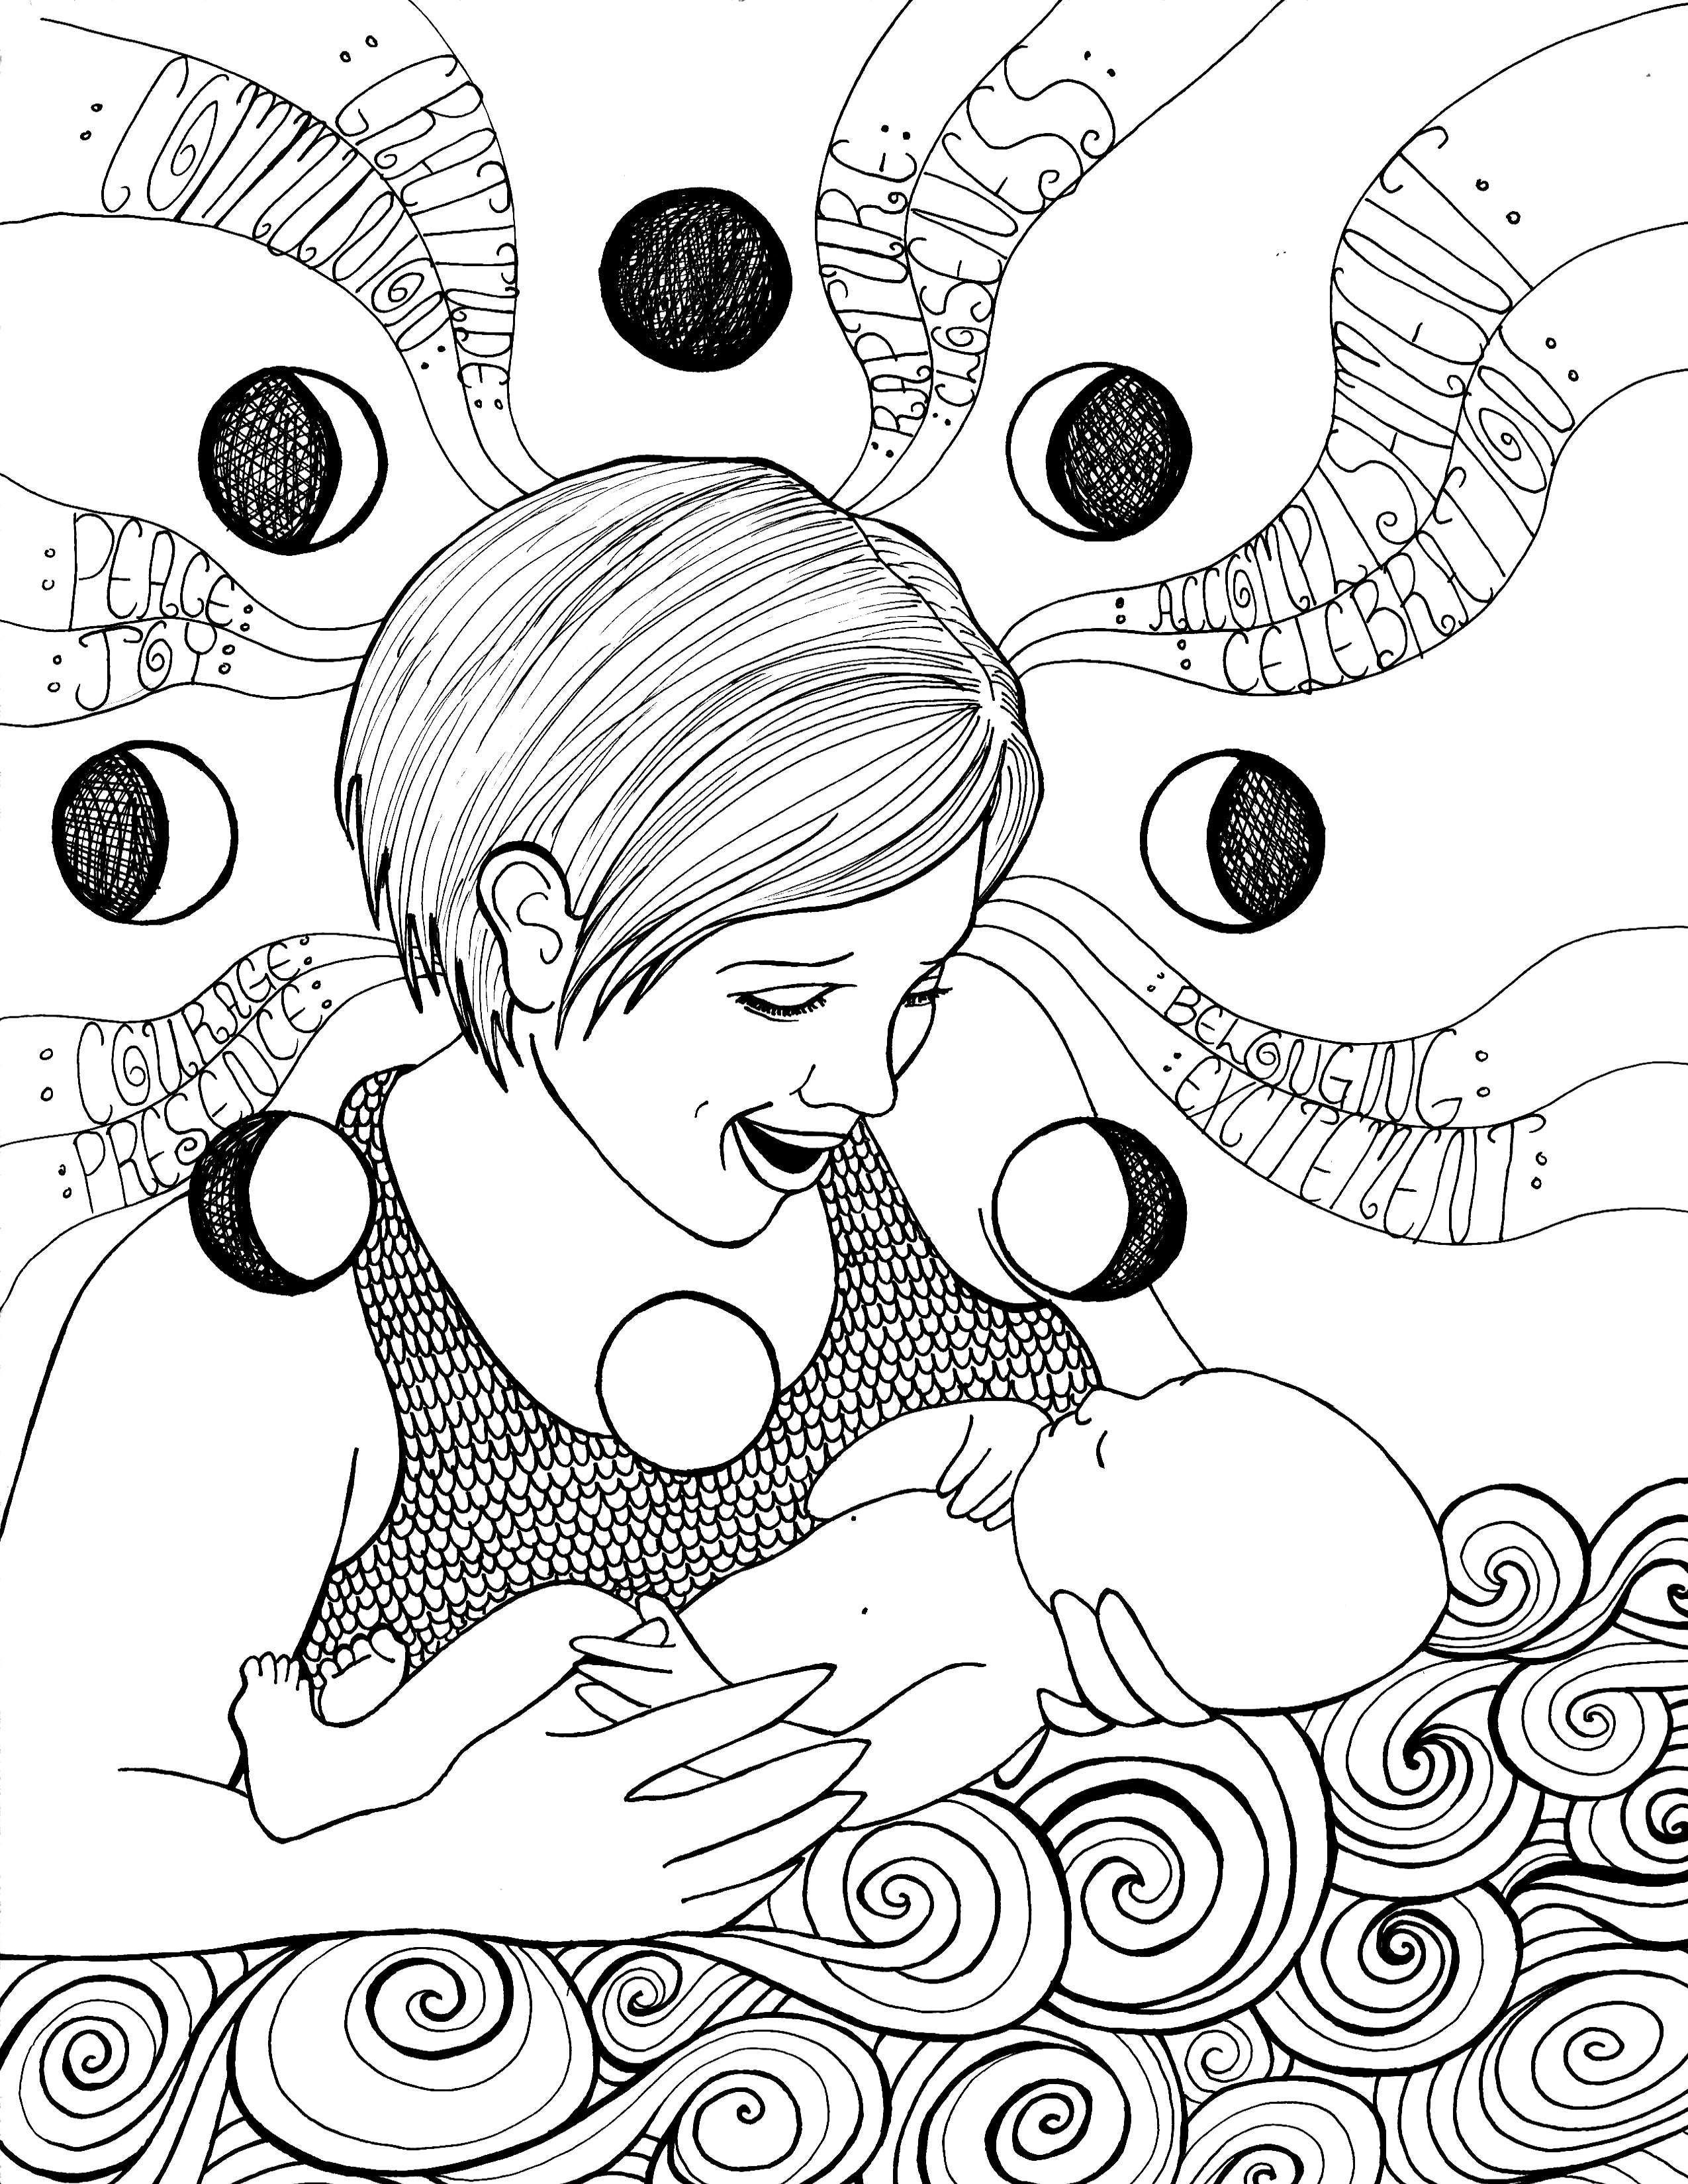 Free Pregnancy Coloring Pages | Pinterest | Pregnancy, Miraculous ...